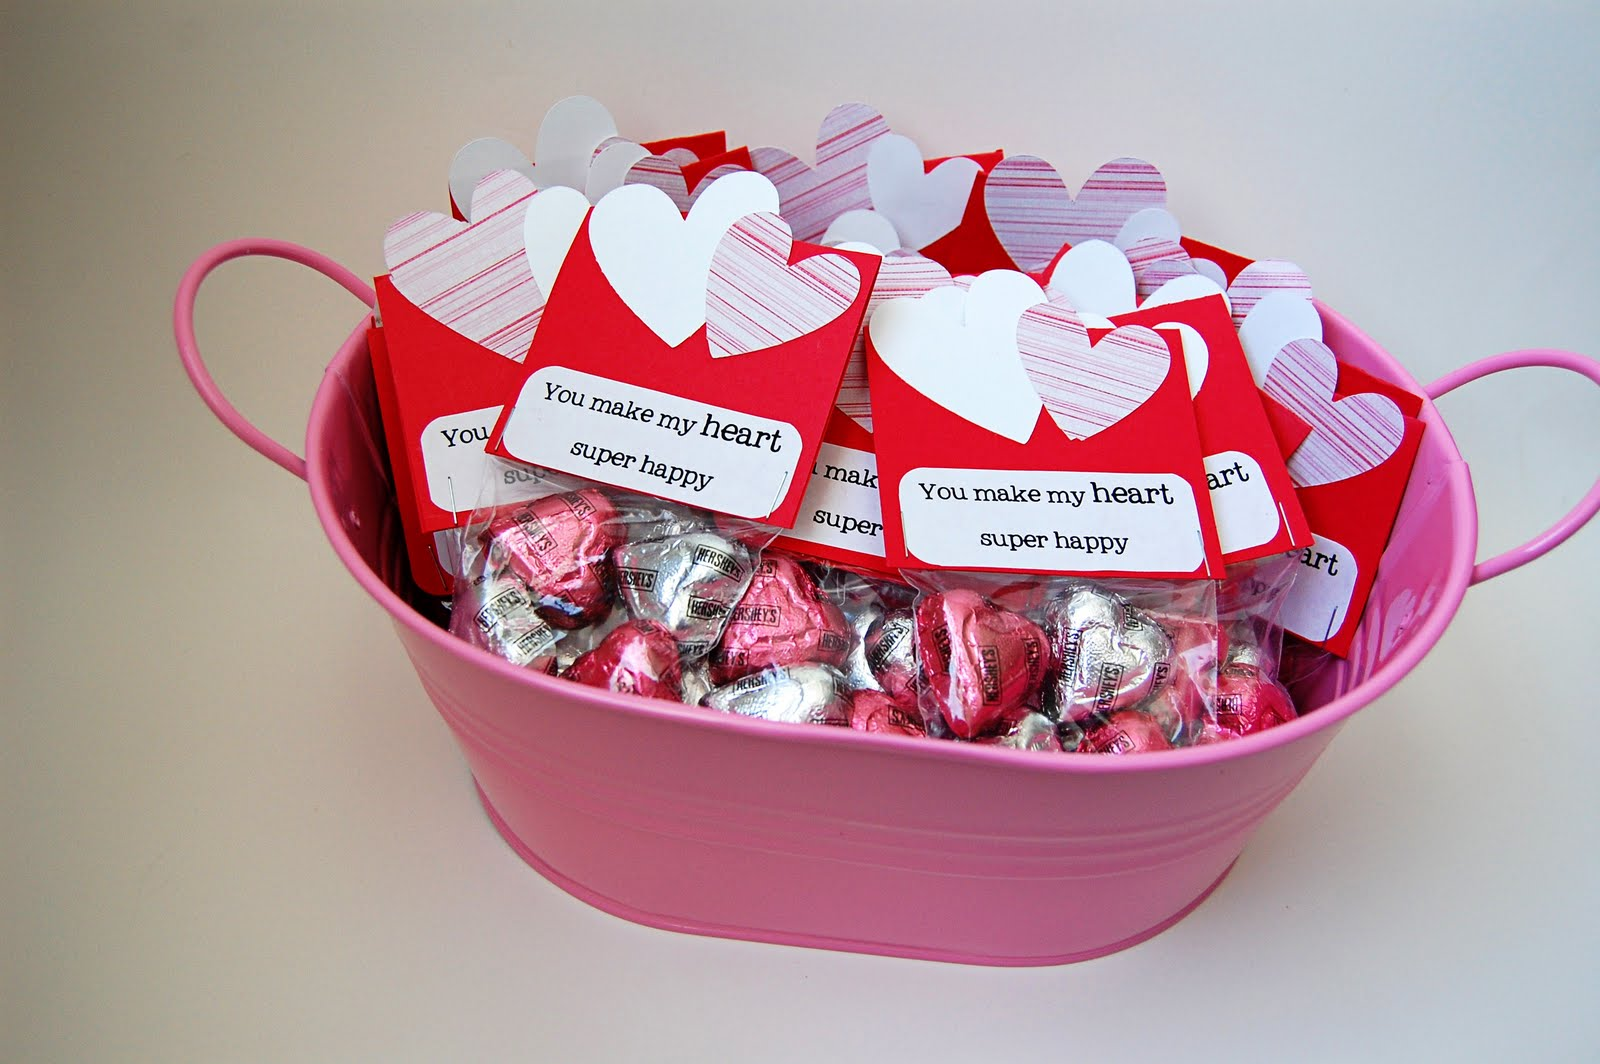 45 Homemade Valentines Day Gift Ideas For Him